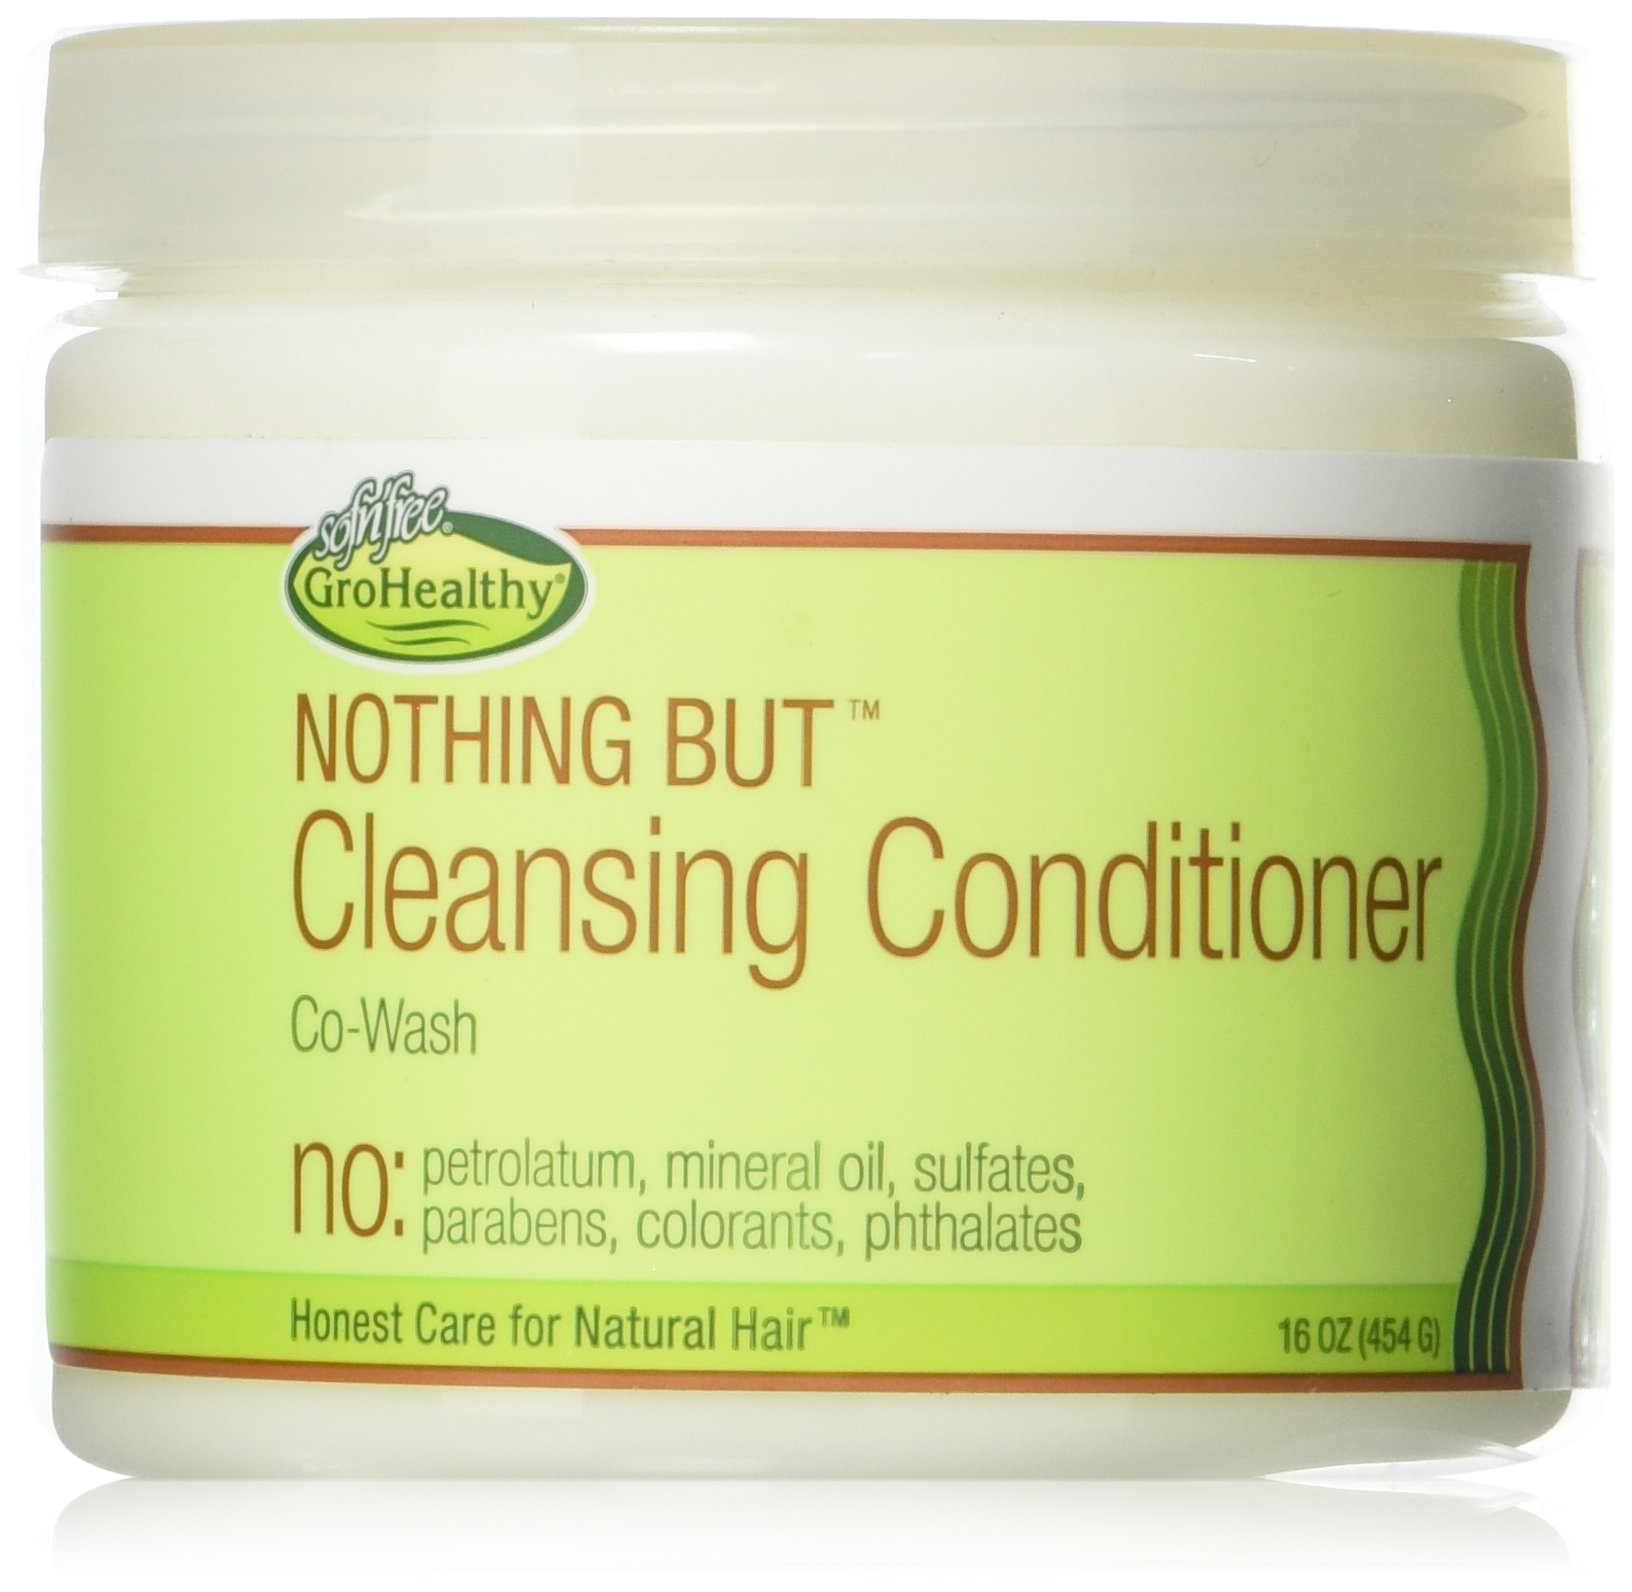 Sof N Free Gro Healthy Nothing But Cleansing Conditioner, 16 Ounce